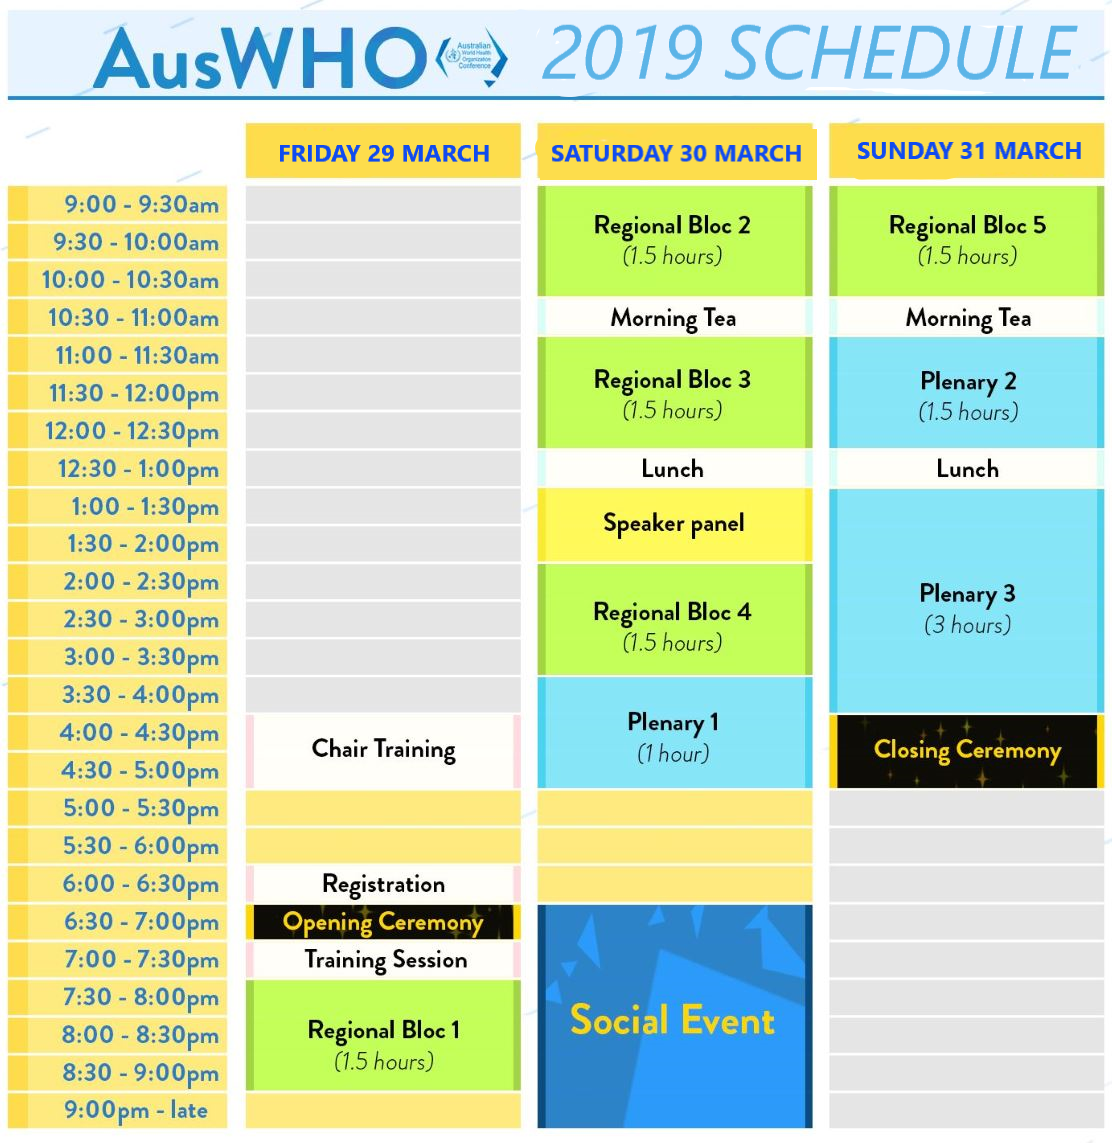 AUSWHO 2019 Conference Schedule